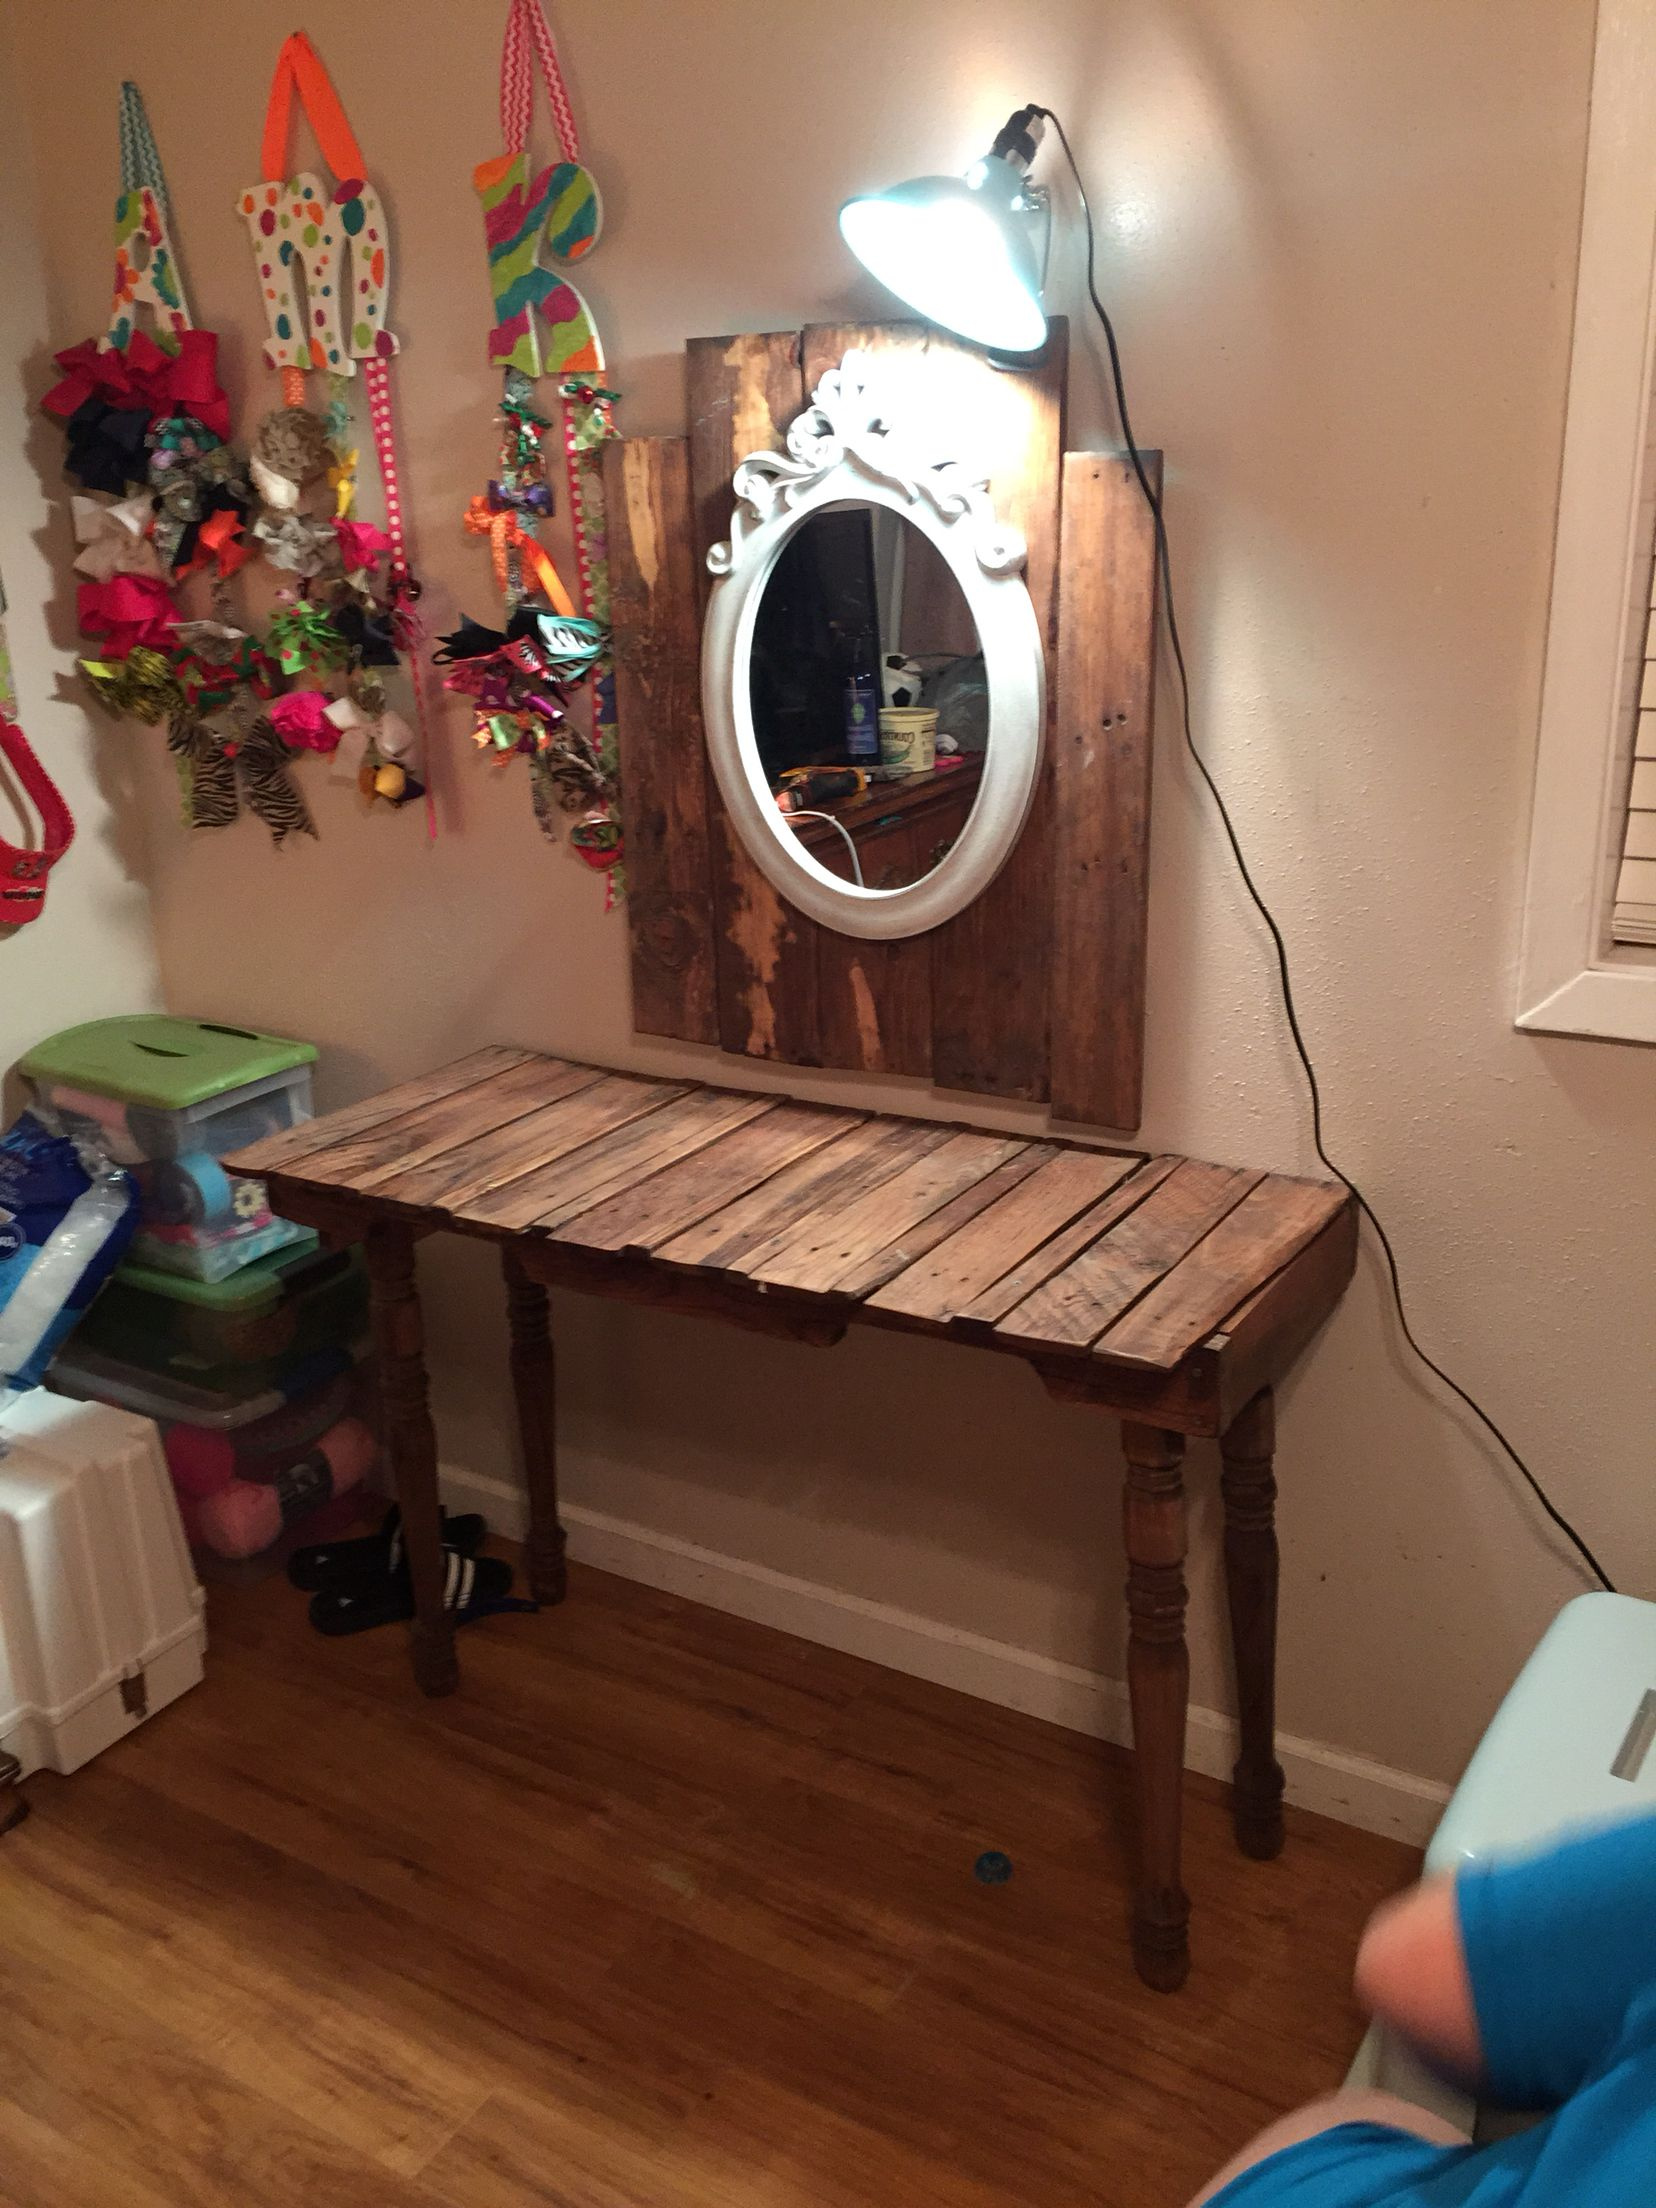 Metal Makeup Vanity Table Set Vanity Made Out Of Pallets Diy Crafts By Kk Pinterest